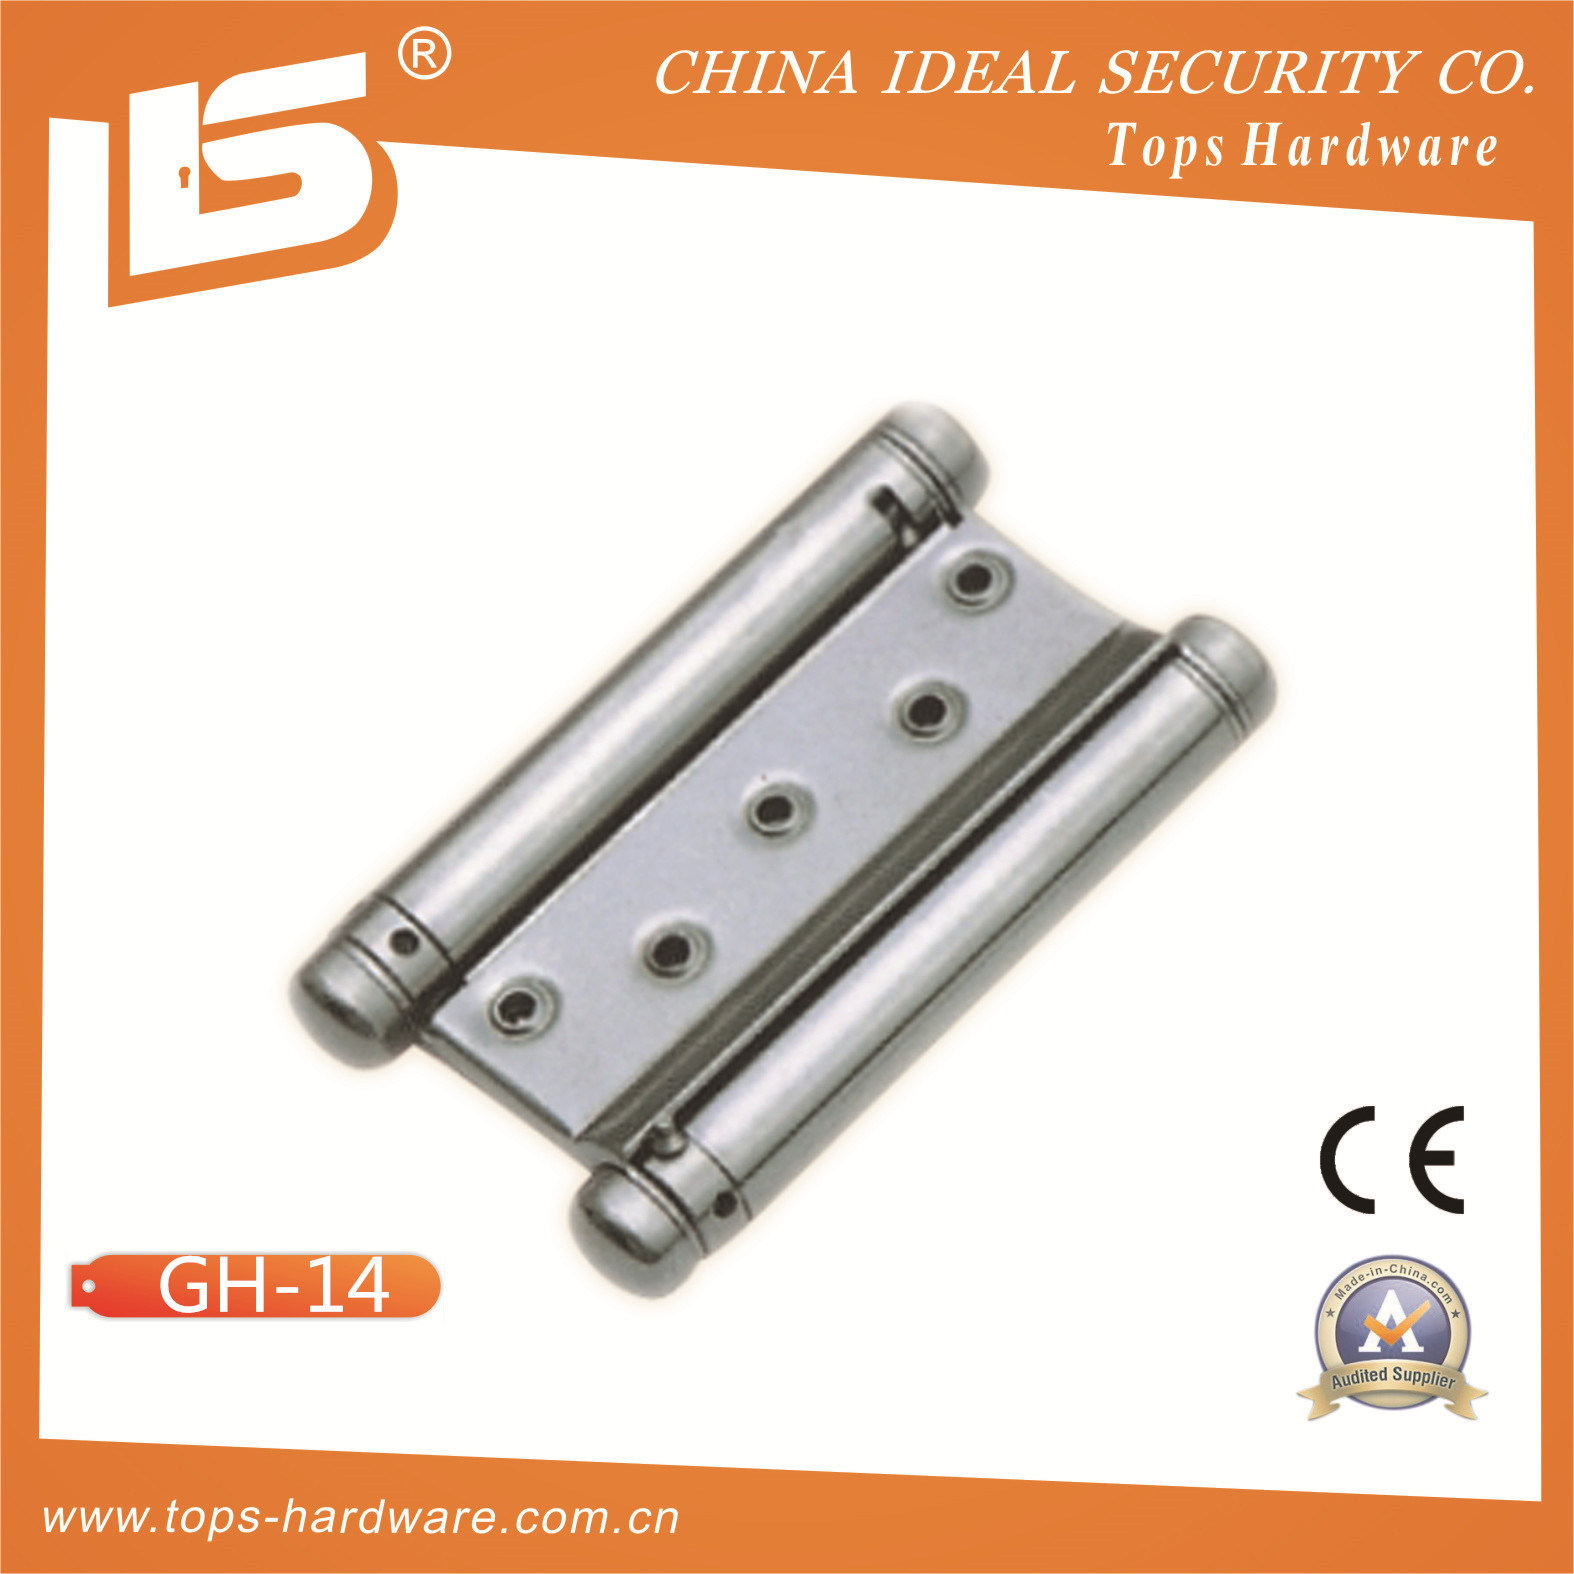 Hydraulic Door Closer Hinge for Double Swing Door (GH-14)  sc 1 st  Wenzhou Tops Hardware Co. Ltd. & China Hydraulic Door Closer Hinge for Double Swing Door (GH-14 ...